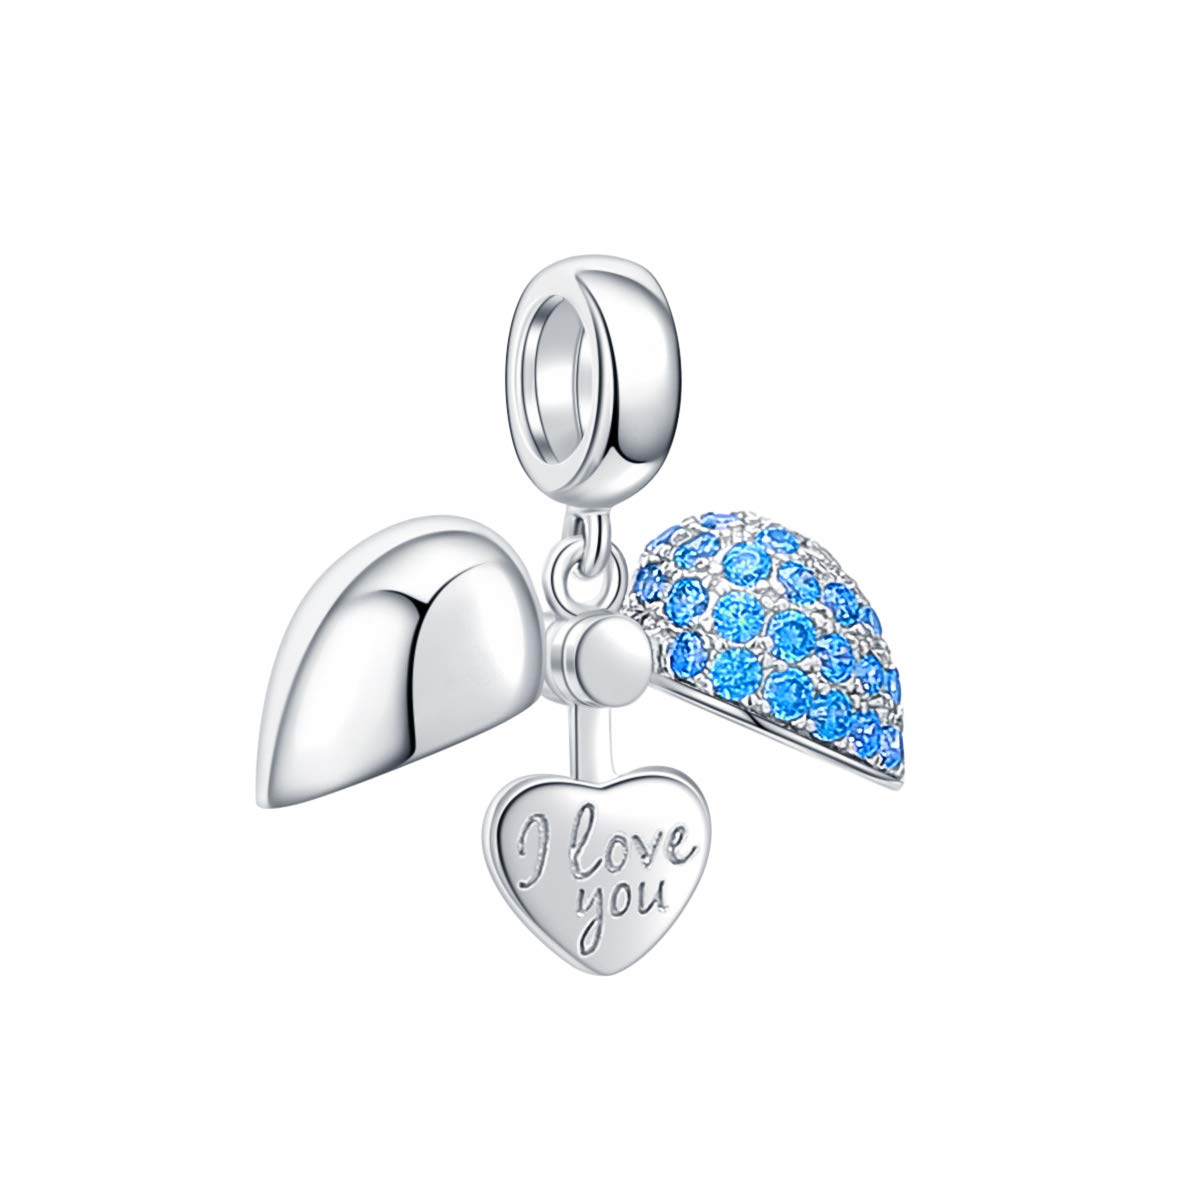 8dea4c5d5 Amazon.com: I Love You Charm 925 Sterling Silver Love Heart Dangle Bead  Charms for European Charms Bracelet Necklace: Toys & Games